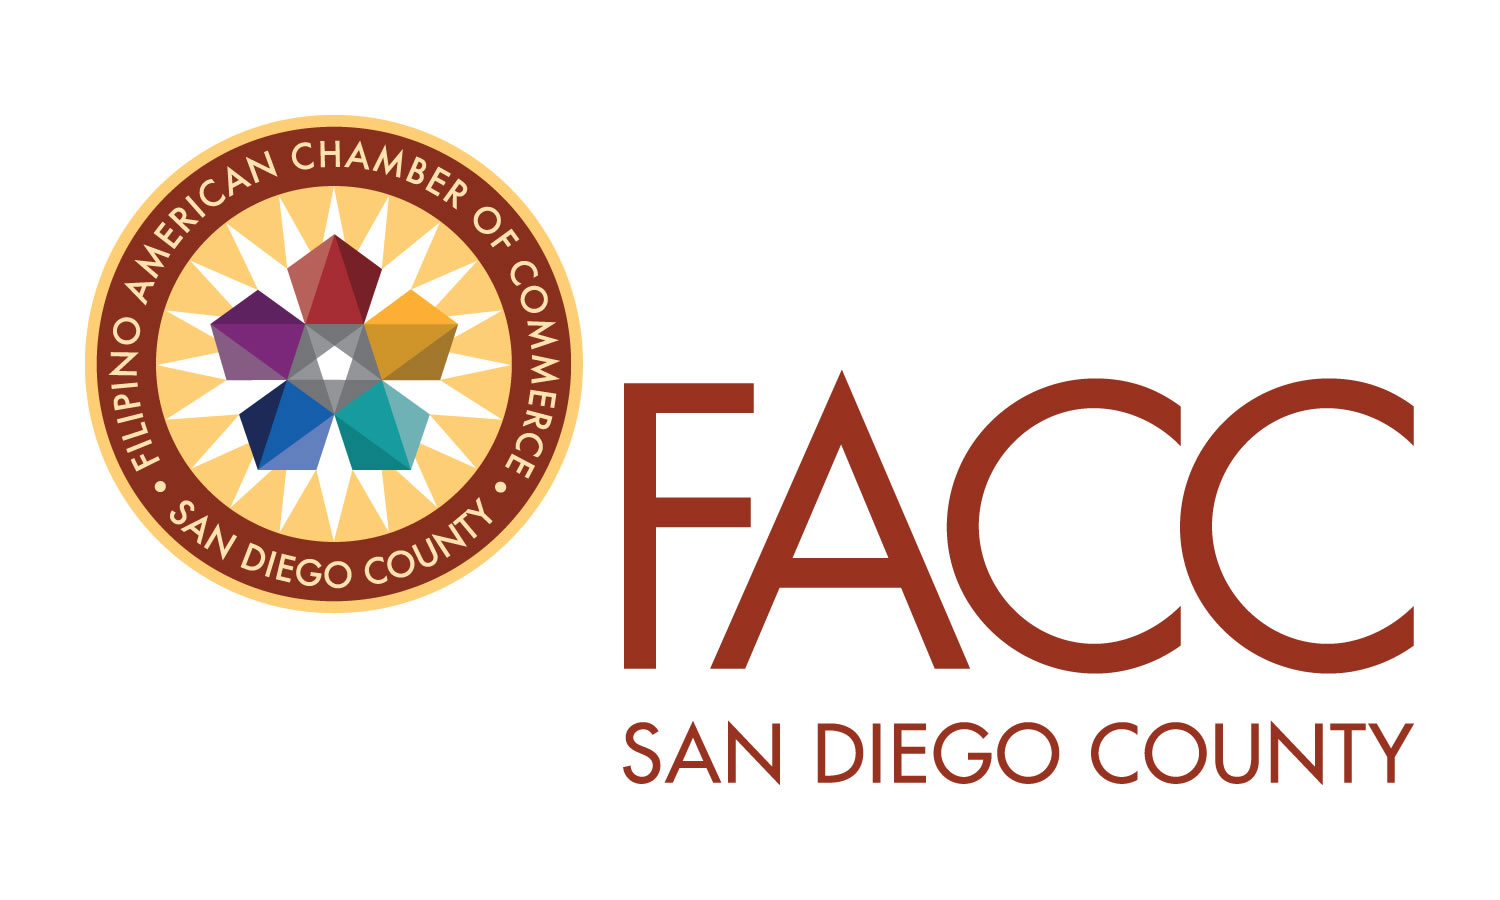 FACC_Logo_FINAL_Color_5